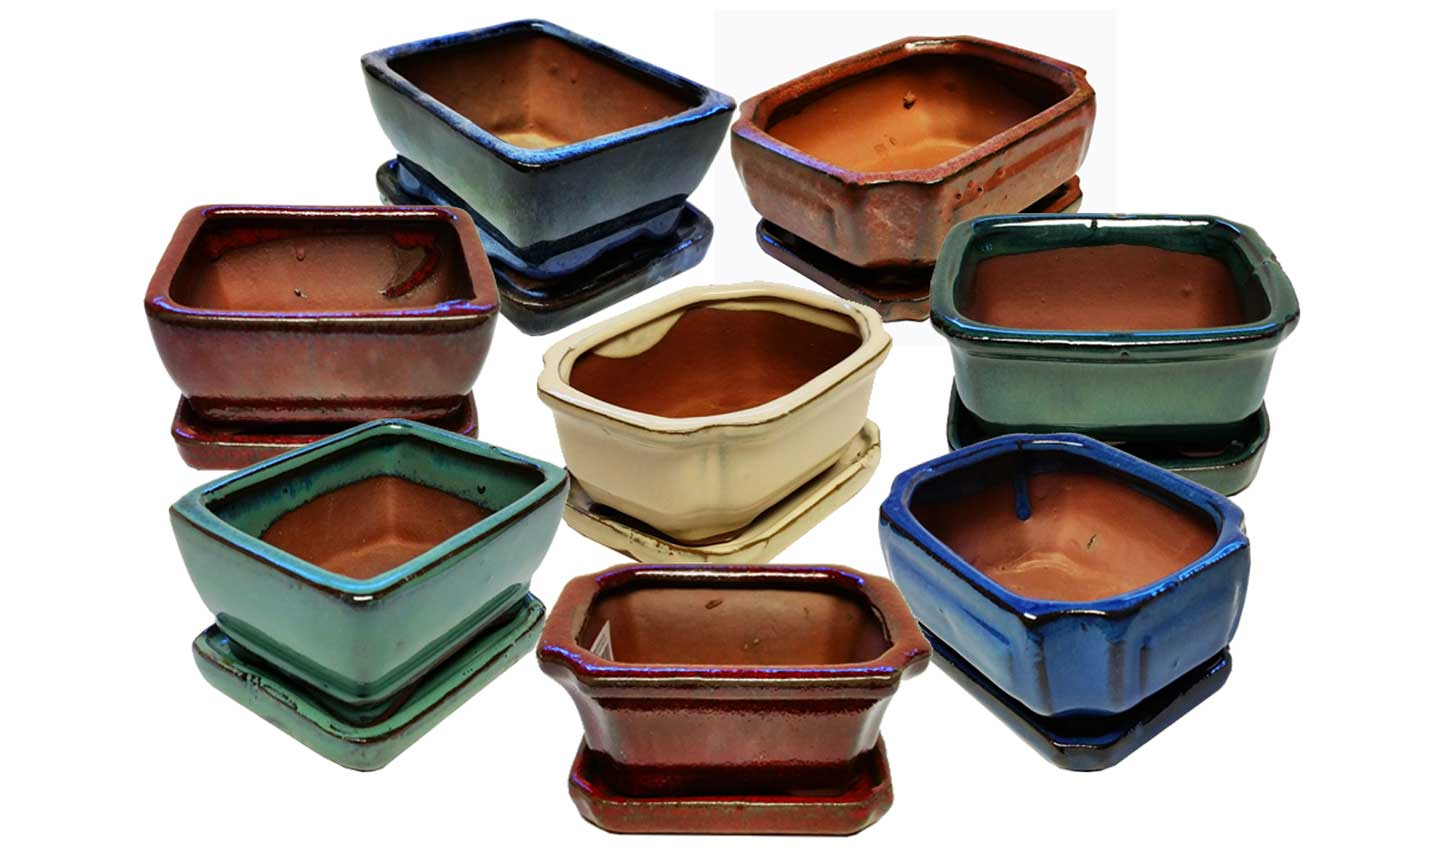 4 Inch Glazed Bonsai Pottery w/ Detached Trays by Lotus